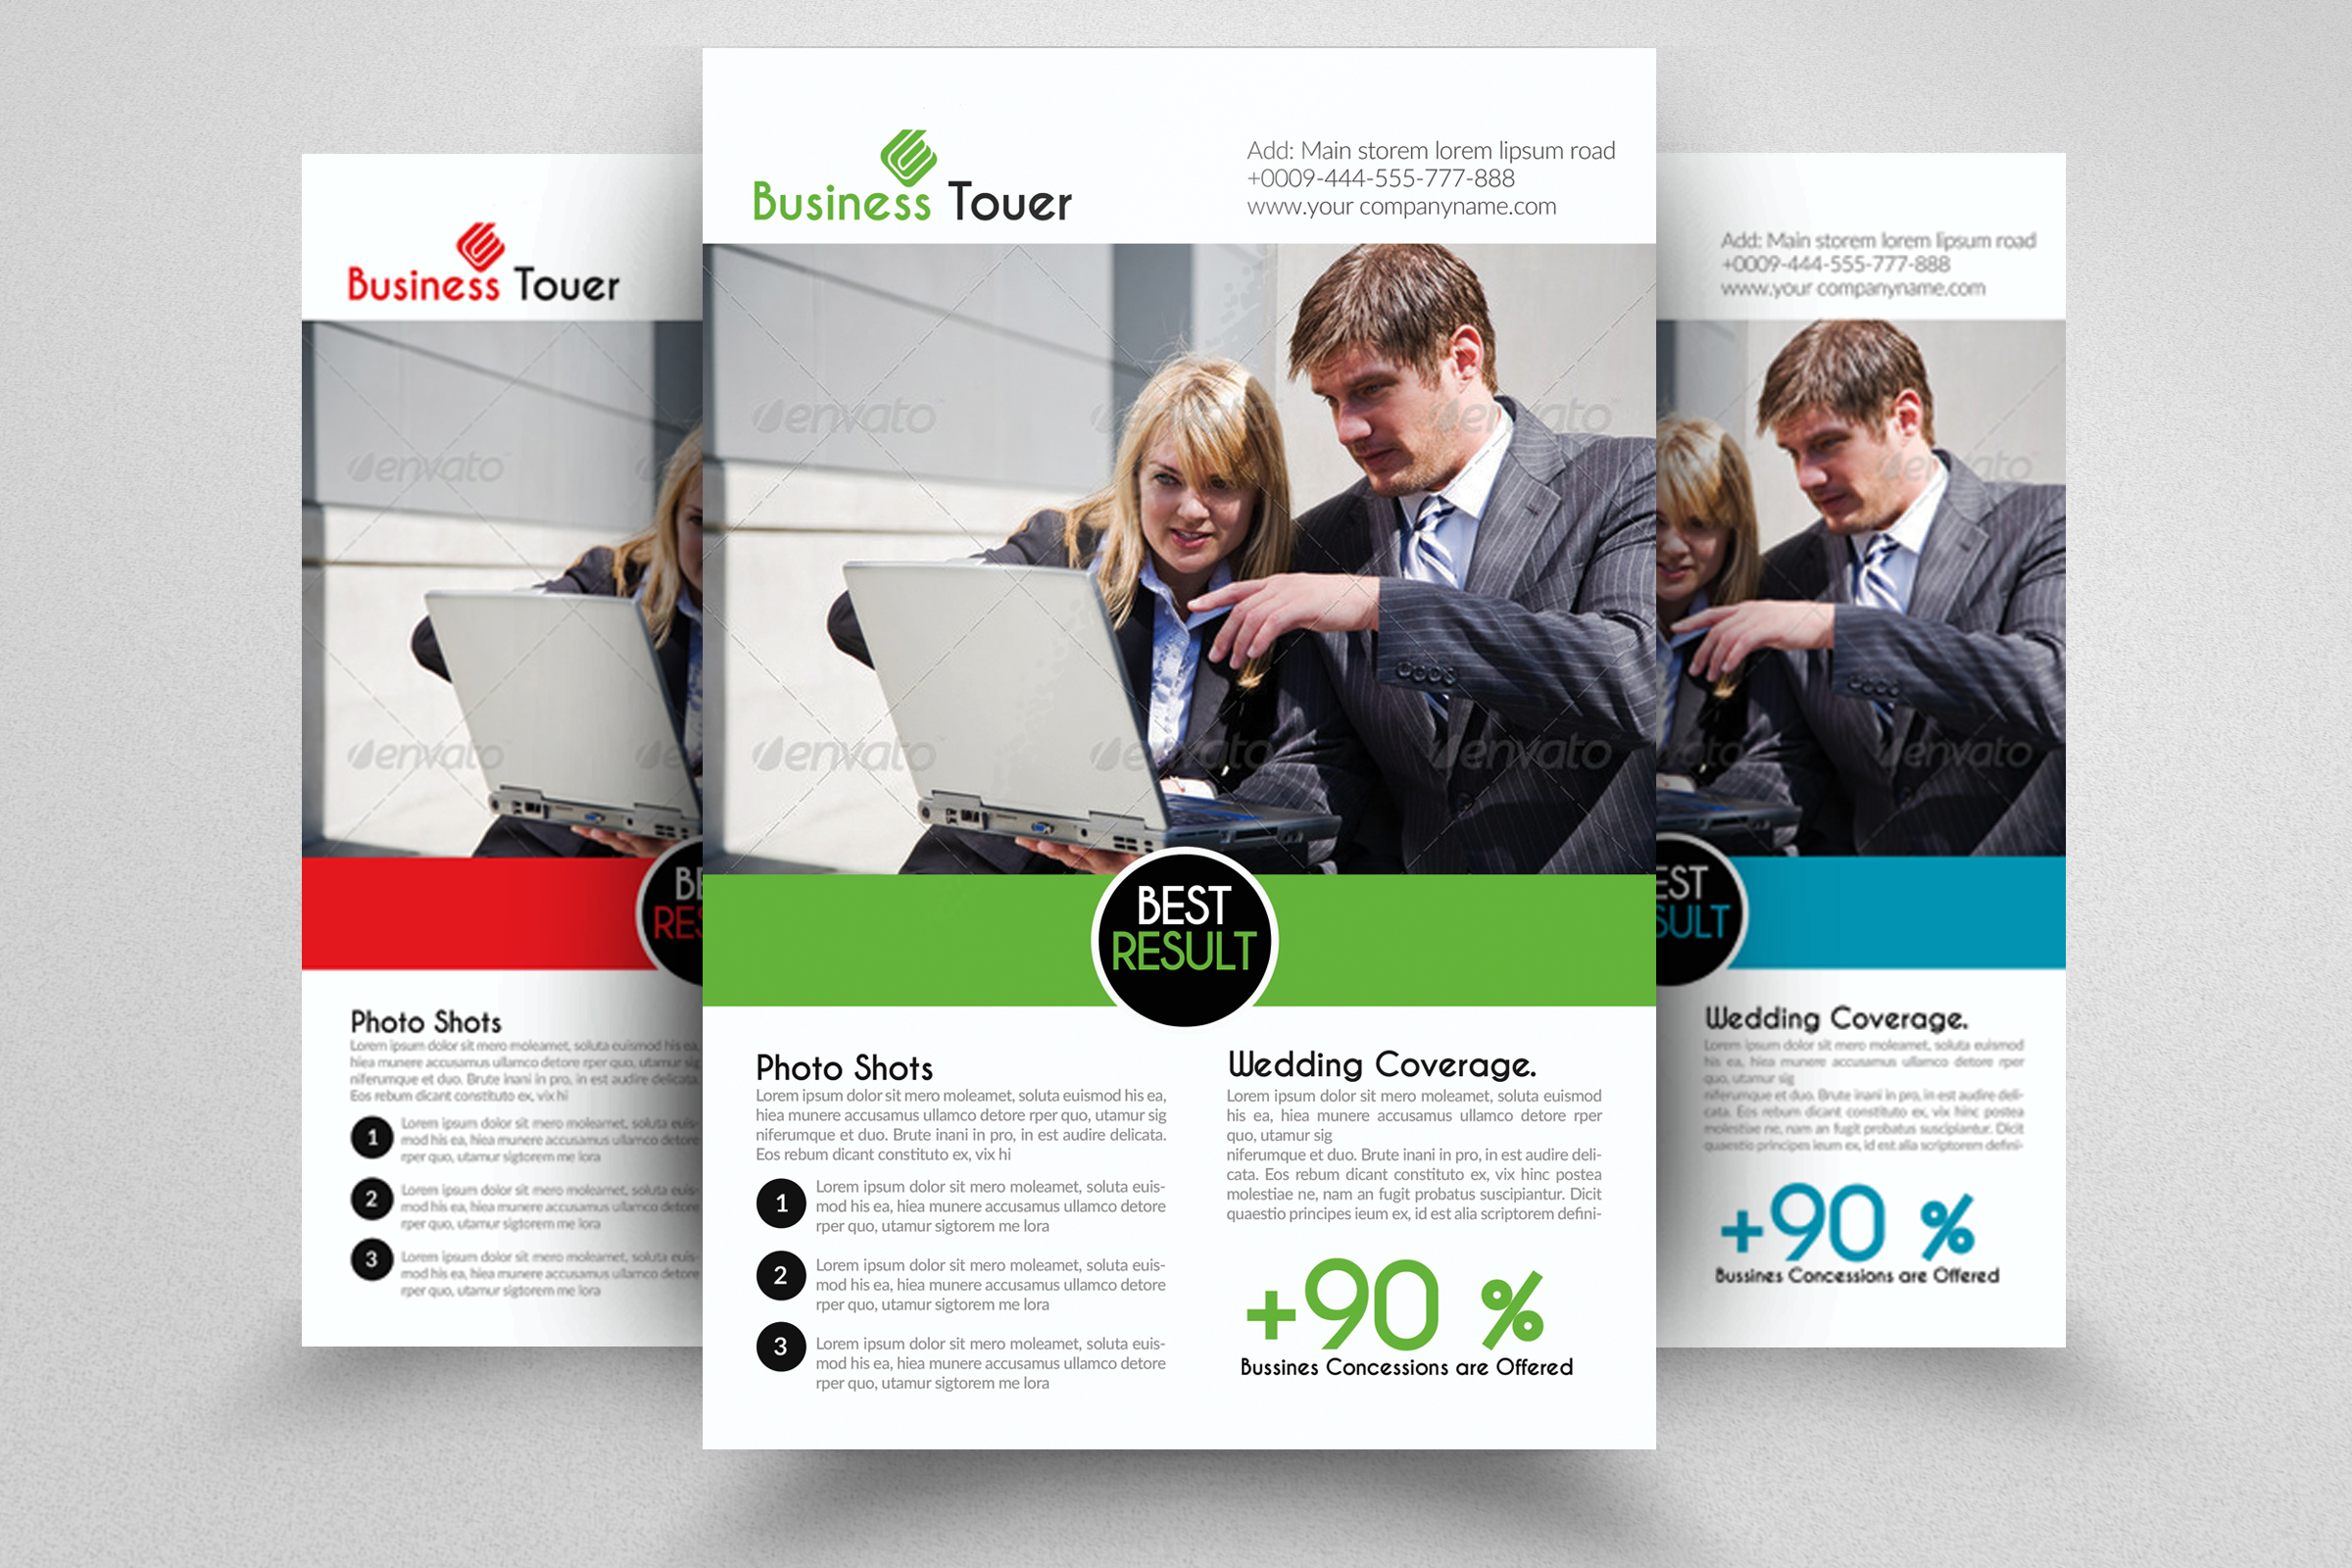 Legal Business Advisor Flyers example image 1